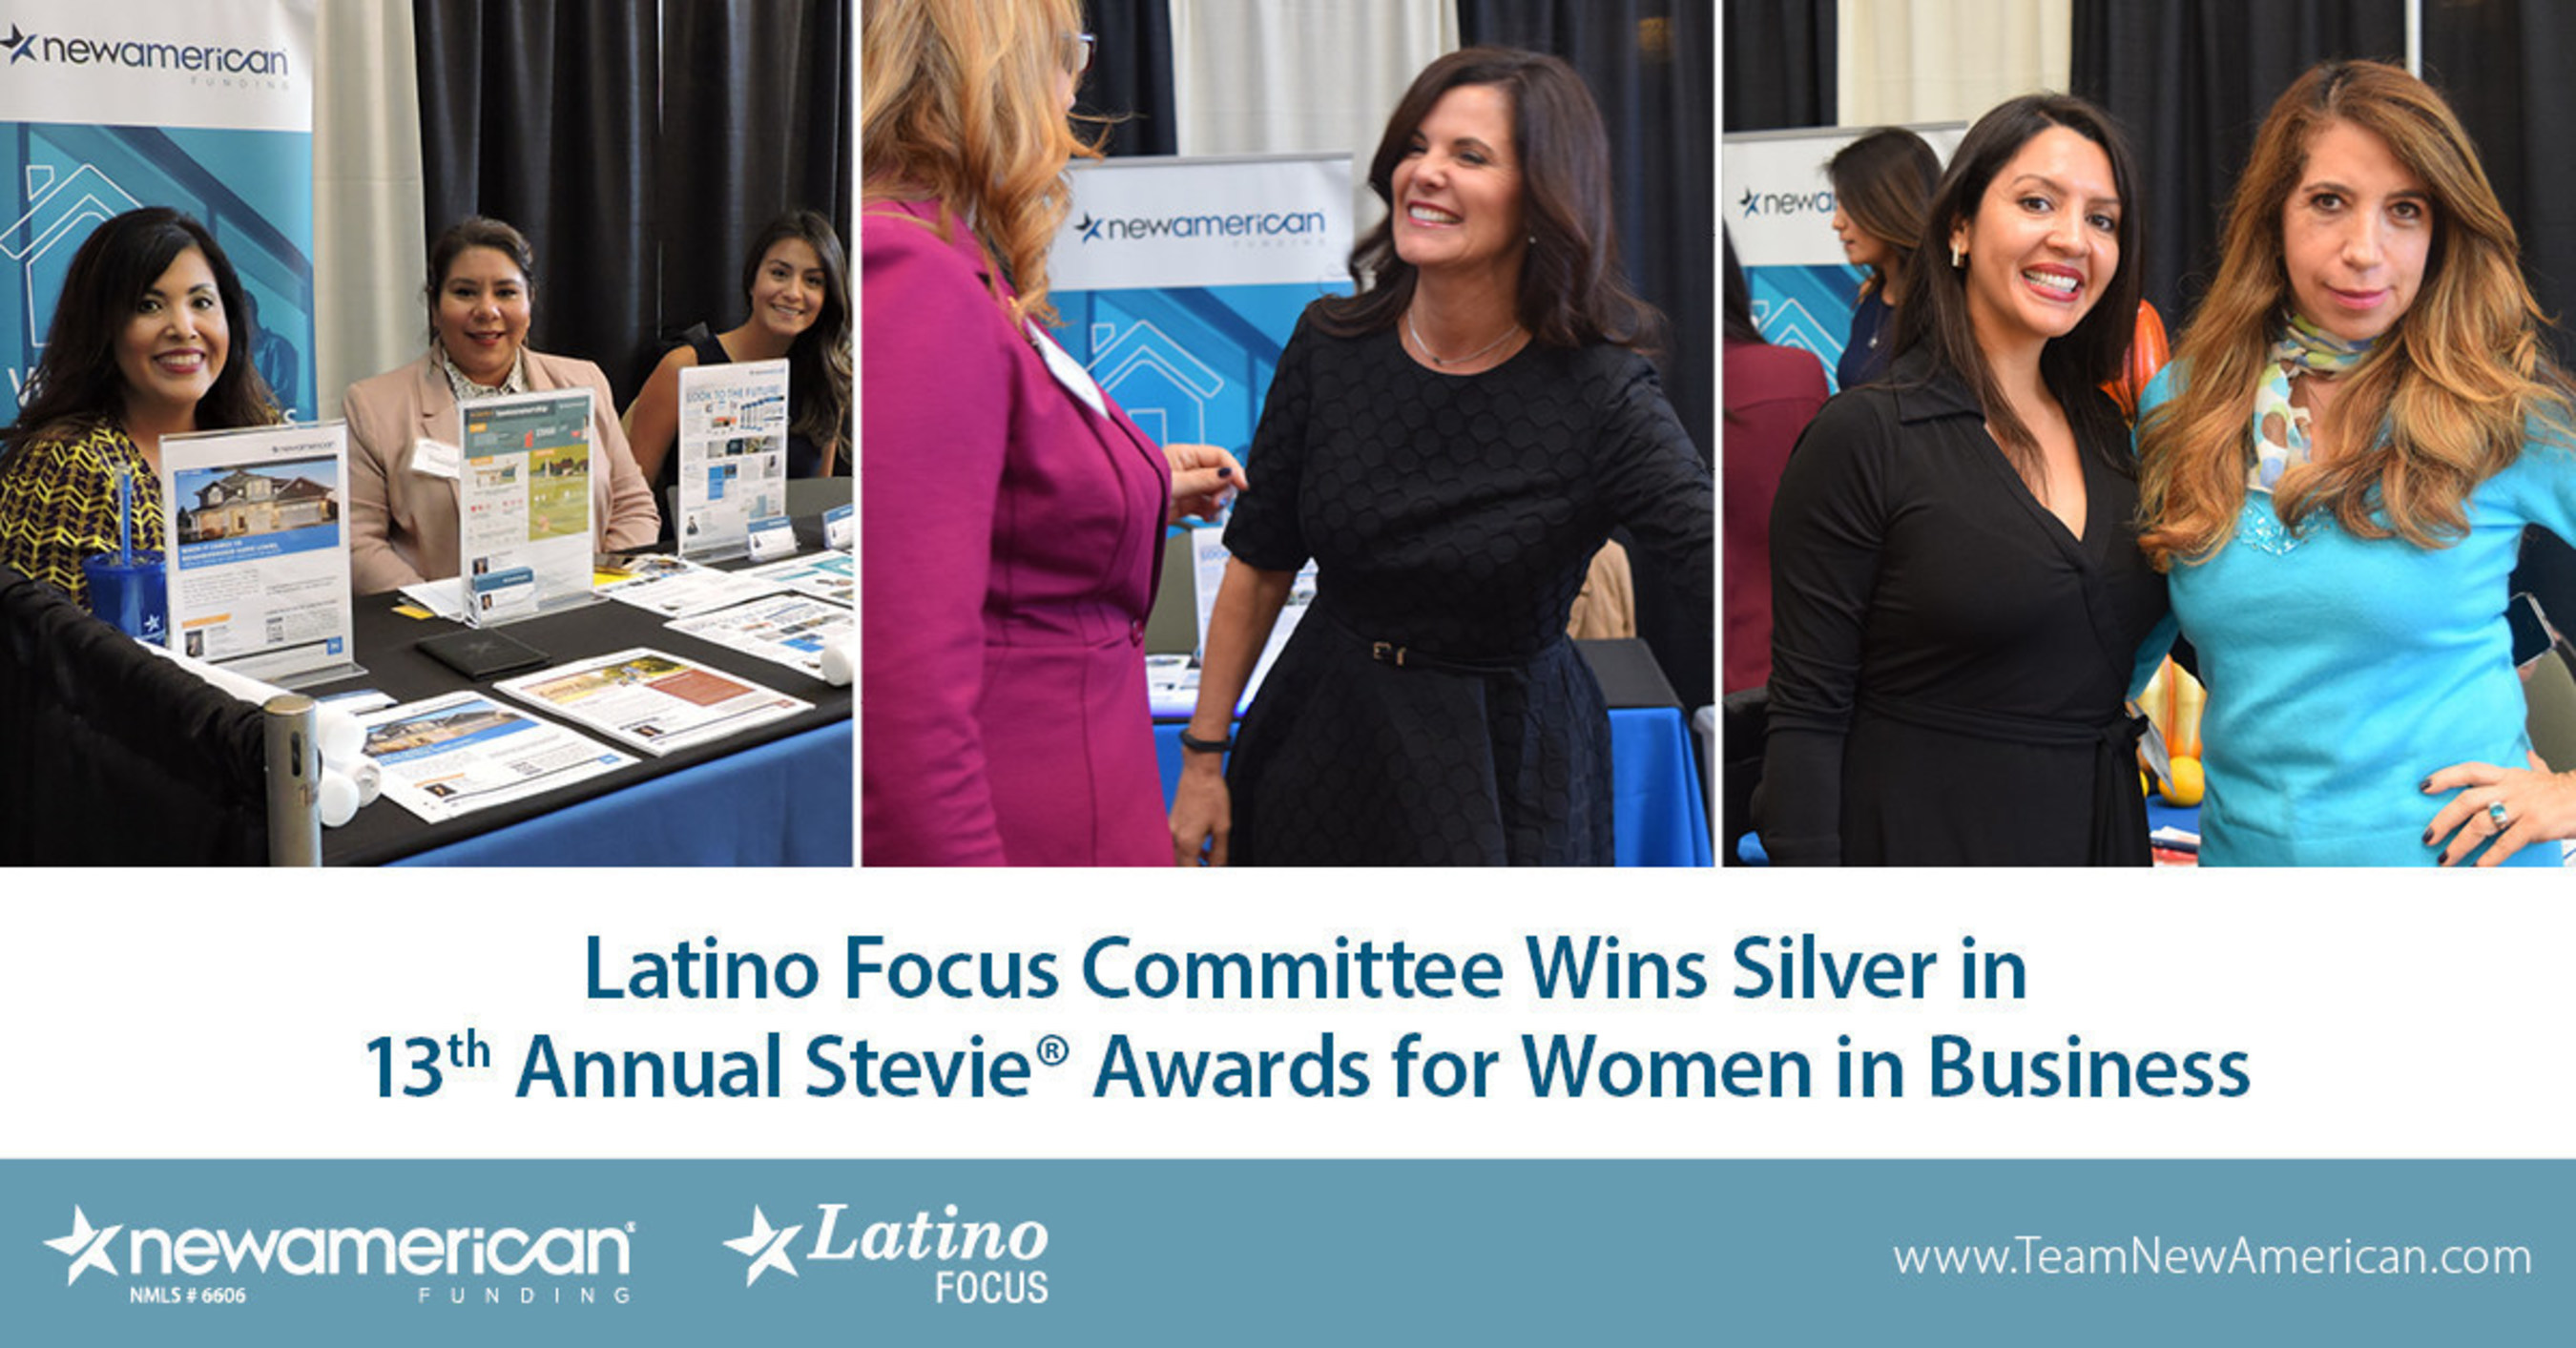 Latino Focus Committee Wins Silver in 13th Annual Stevie Awards for Women in Business.